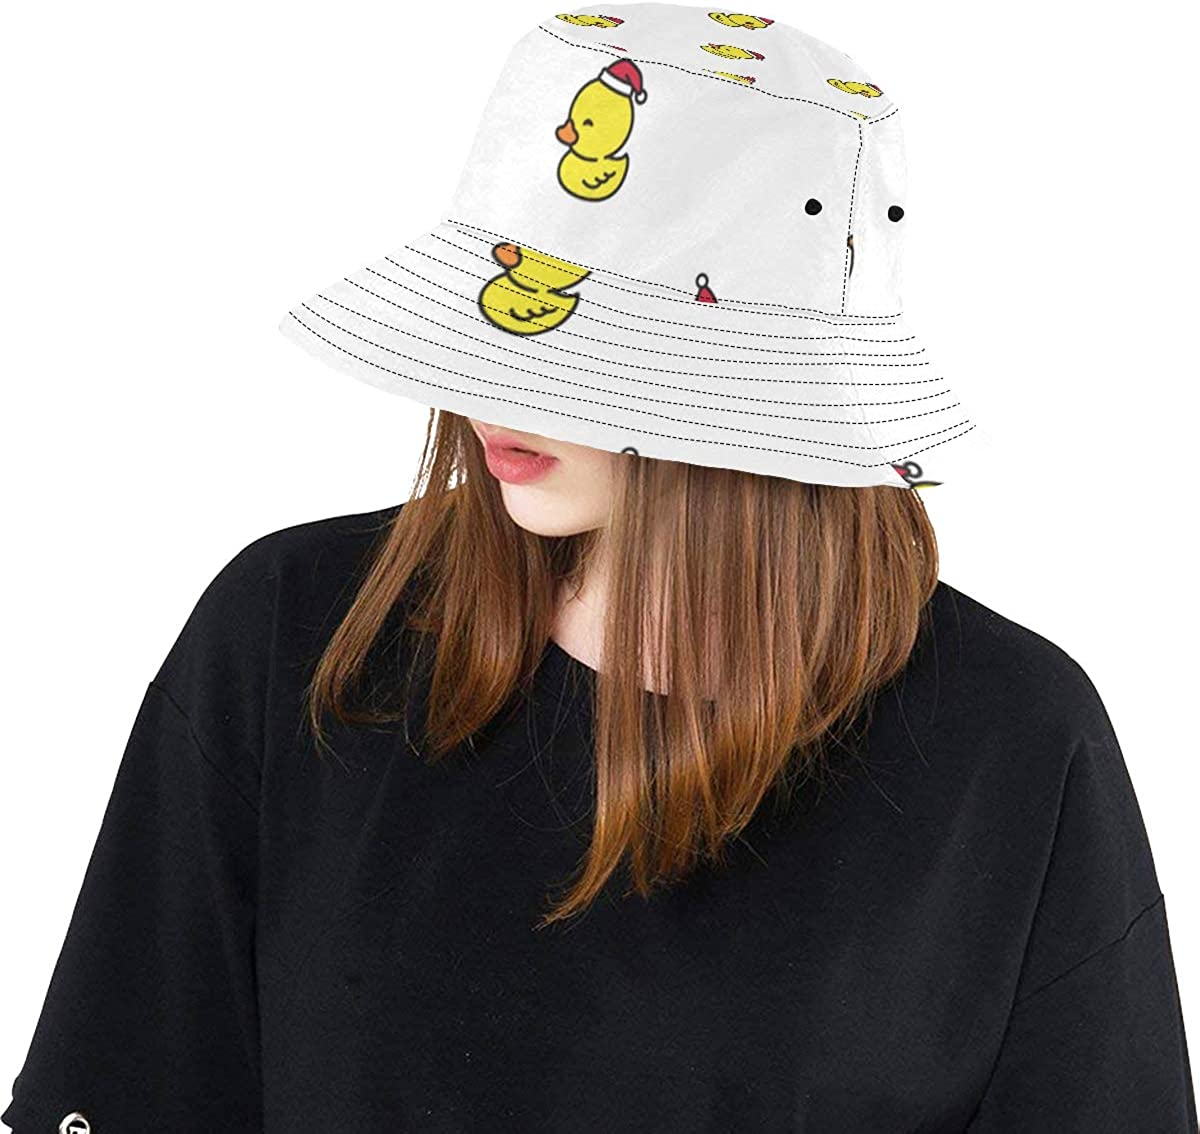 Duck Lovely Yellow Cute Everday Summer Unisex Fishing Sun Top Bucket Hats for Kid Teens Women and Men with Packable Fisherman Cap for Outdoor Baseball Sport Picnic